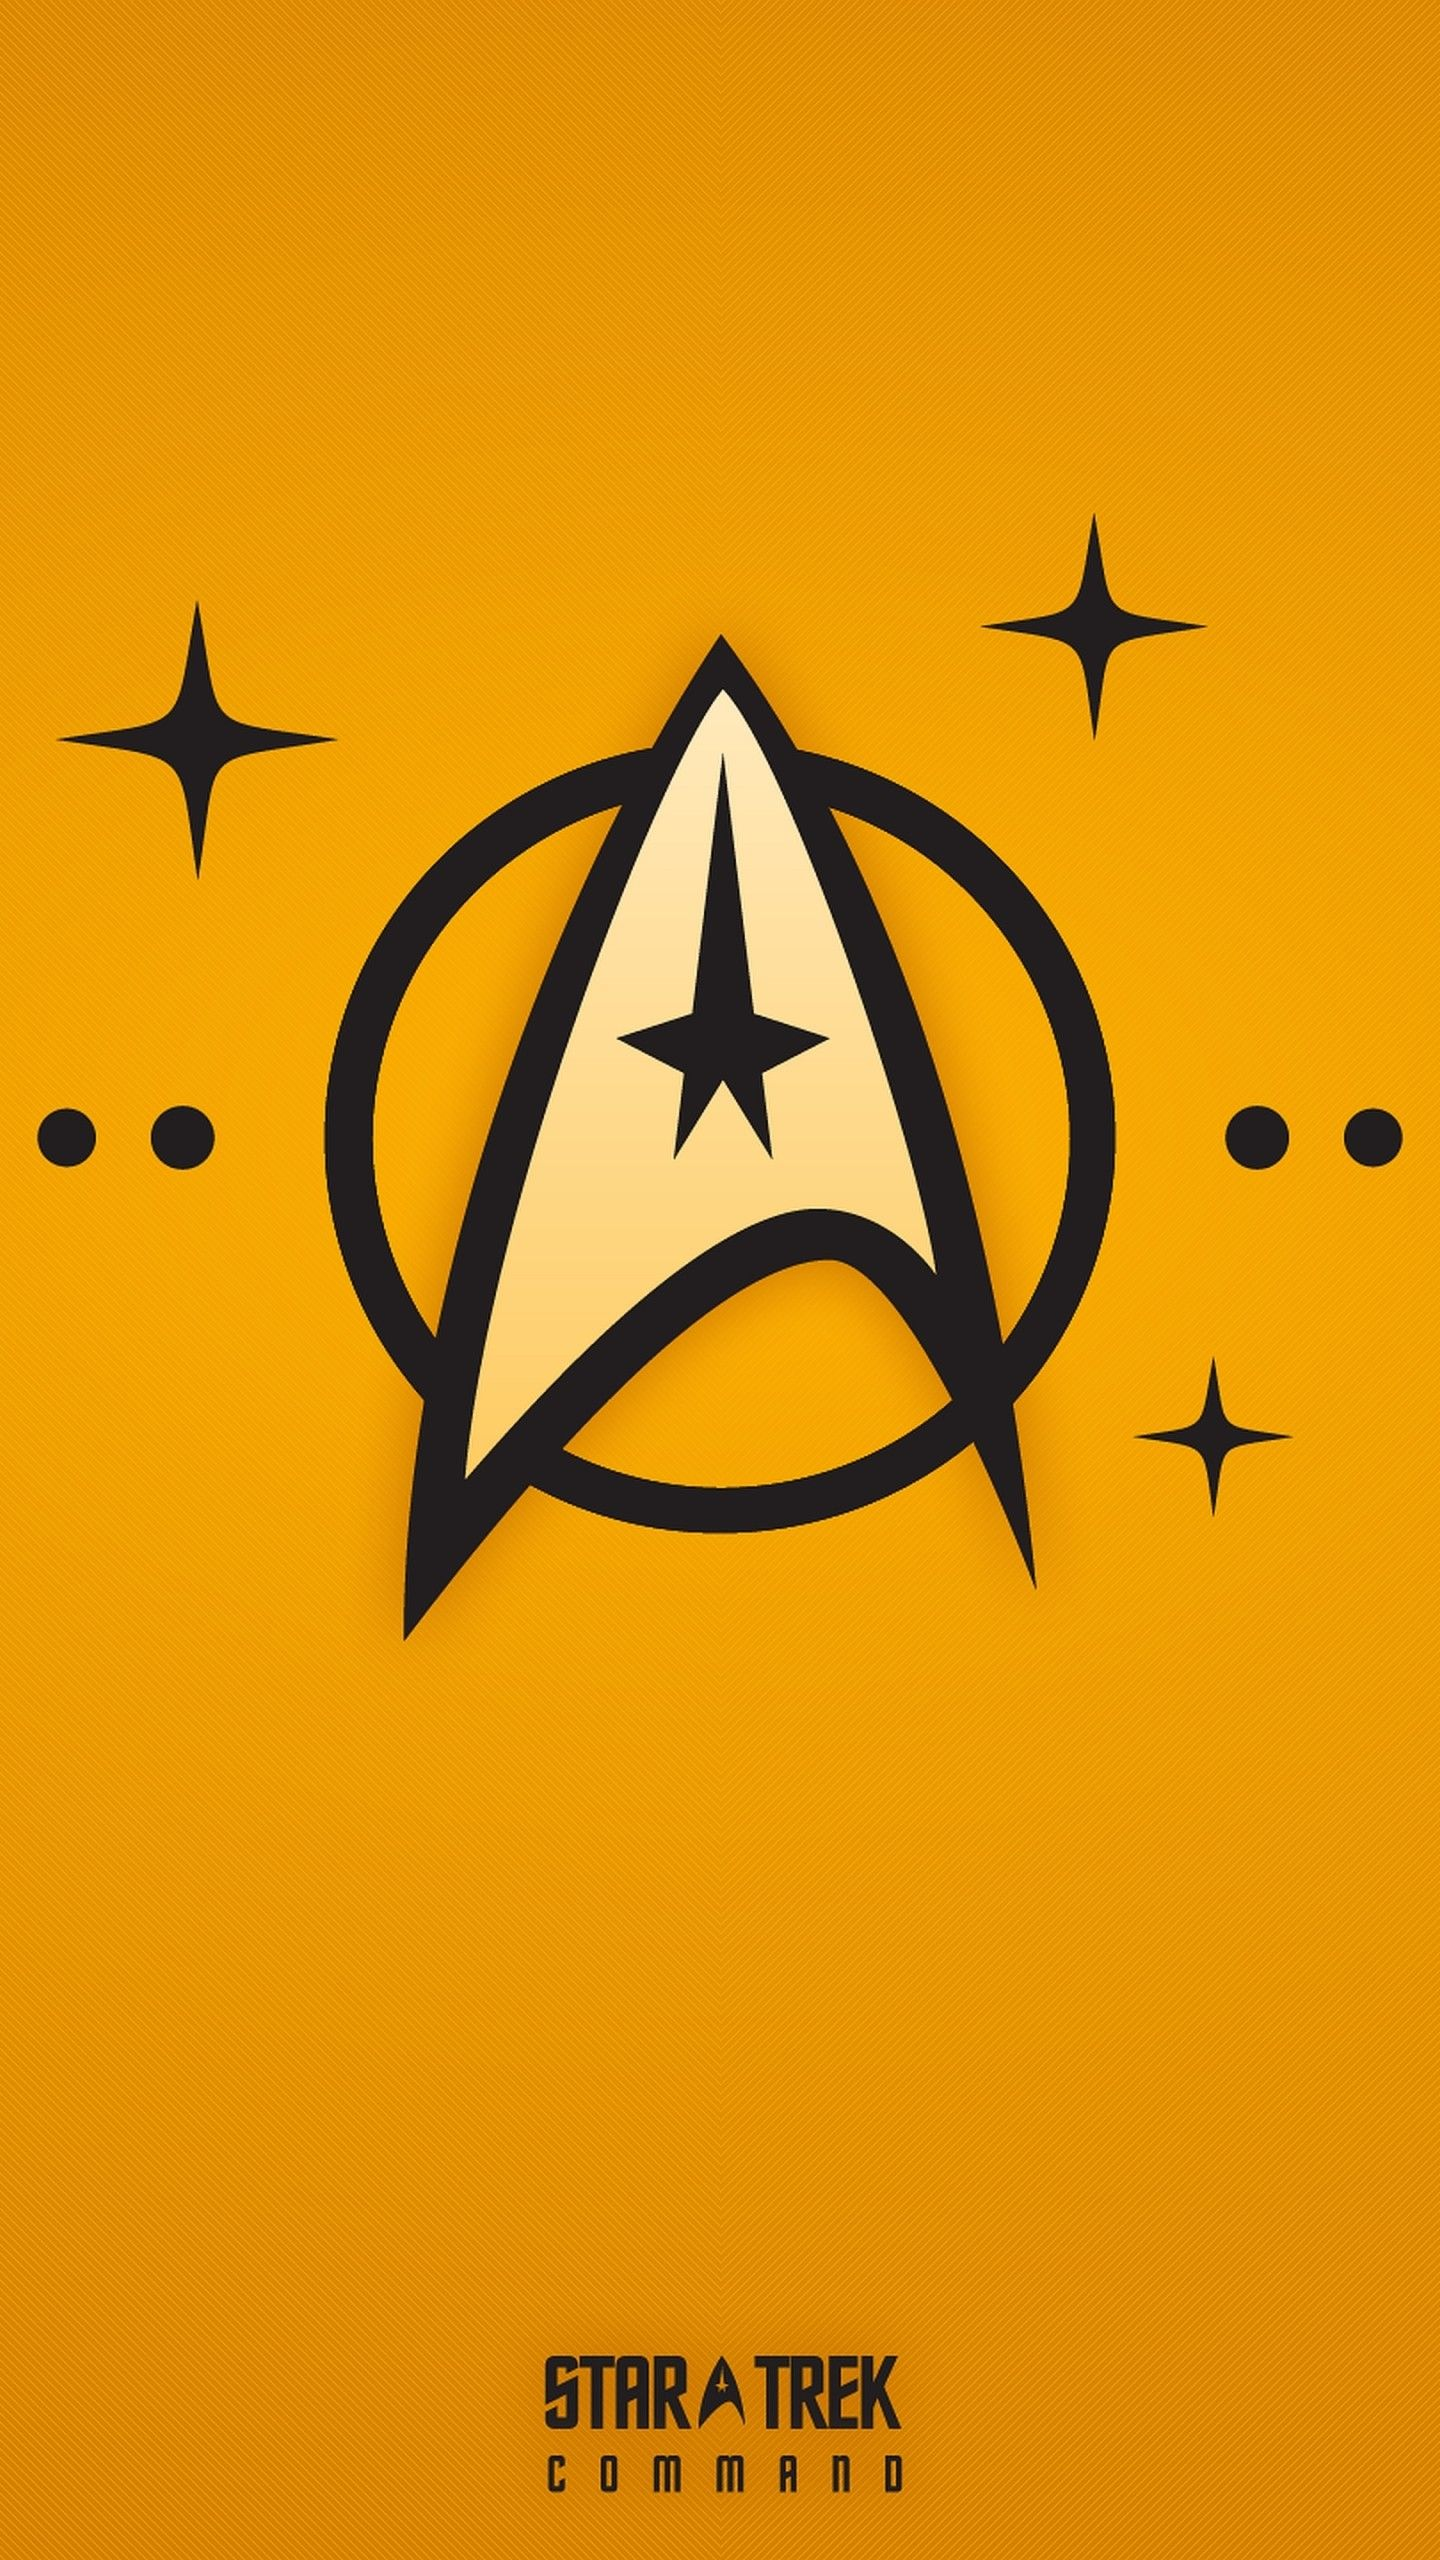 Iphone Wallpaper Sci Fi 139 In 2020 Star Trek Wallpaper Iphone Star Trek Wallpaper Star Trek Artwork